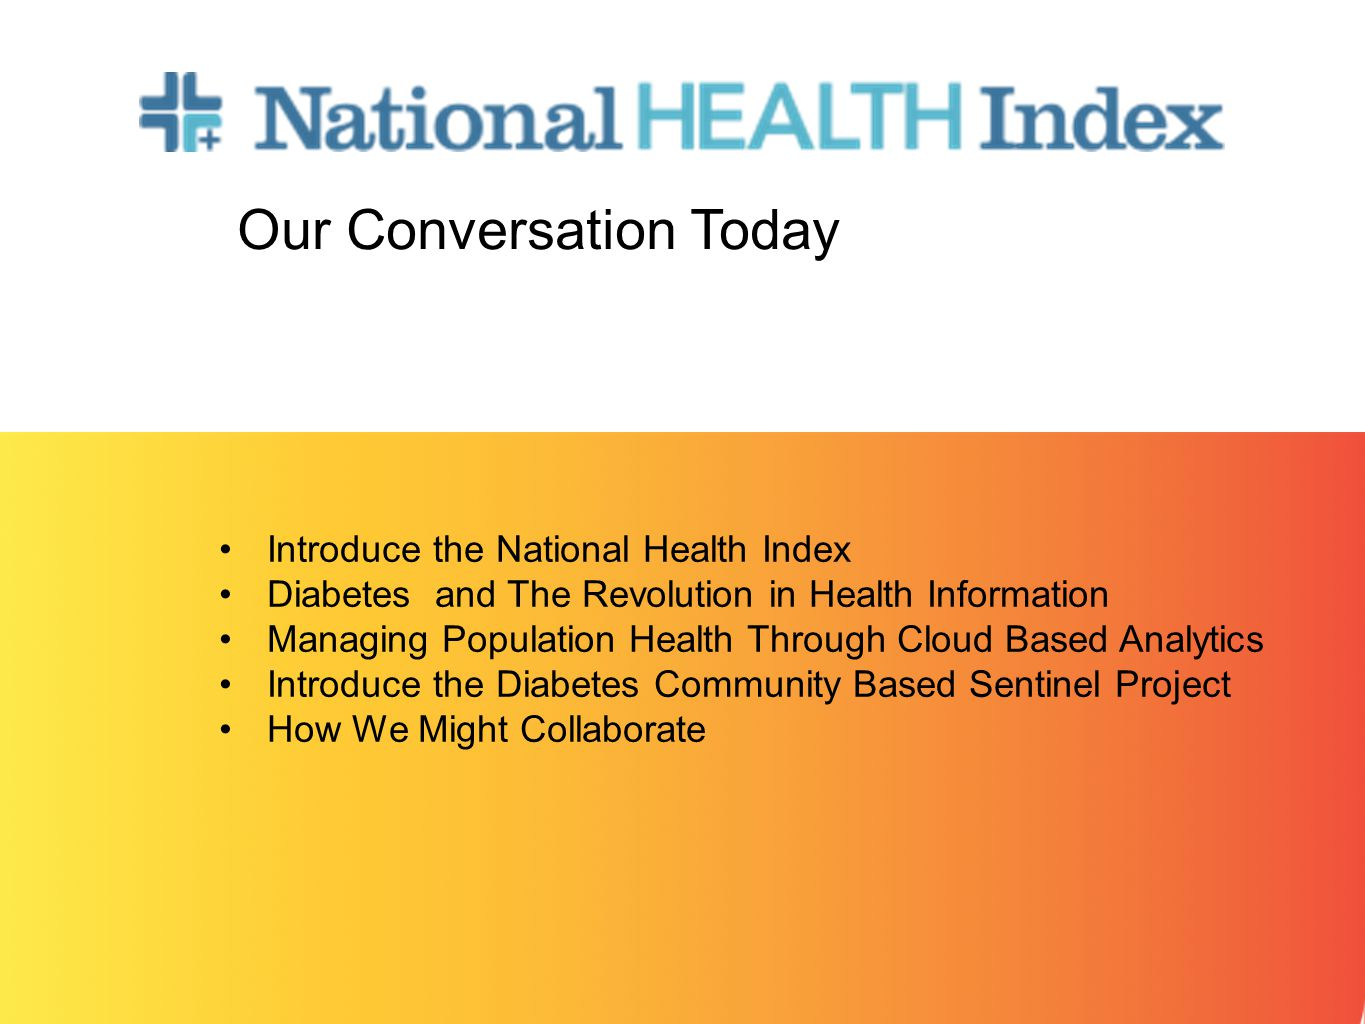 The National Health Index LLC (NHI ) NHI integrates disparate health data sets into easily accessible information systems to create powerful community-based tools to promote well being.